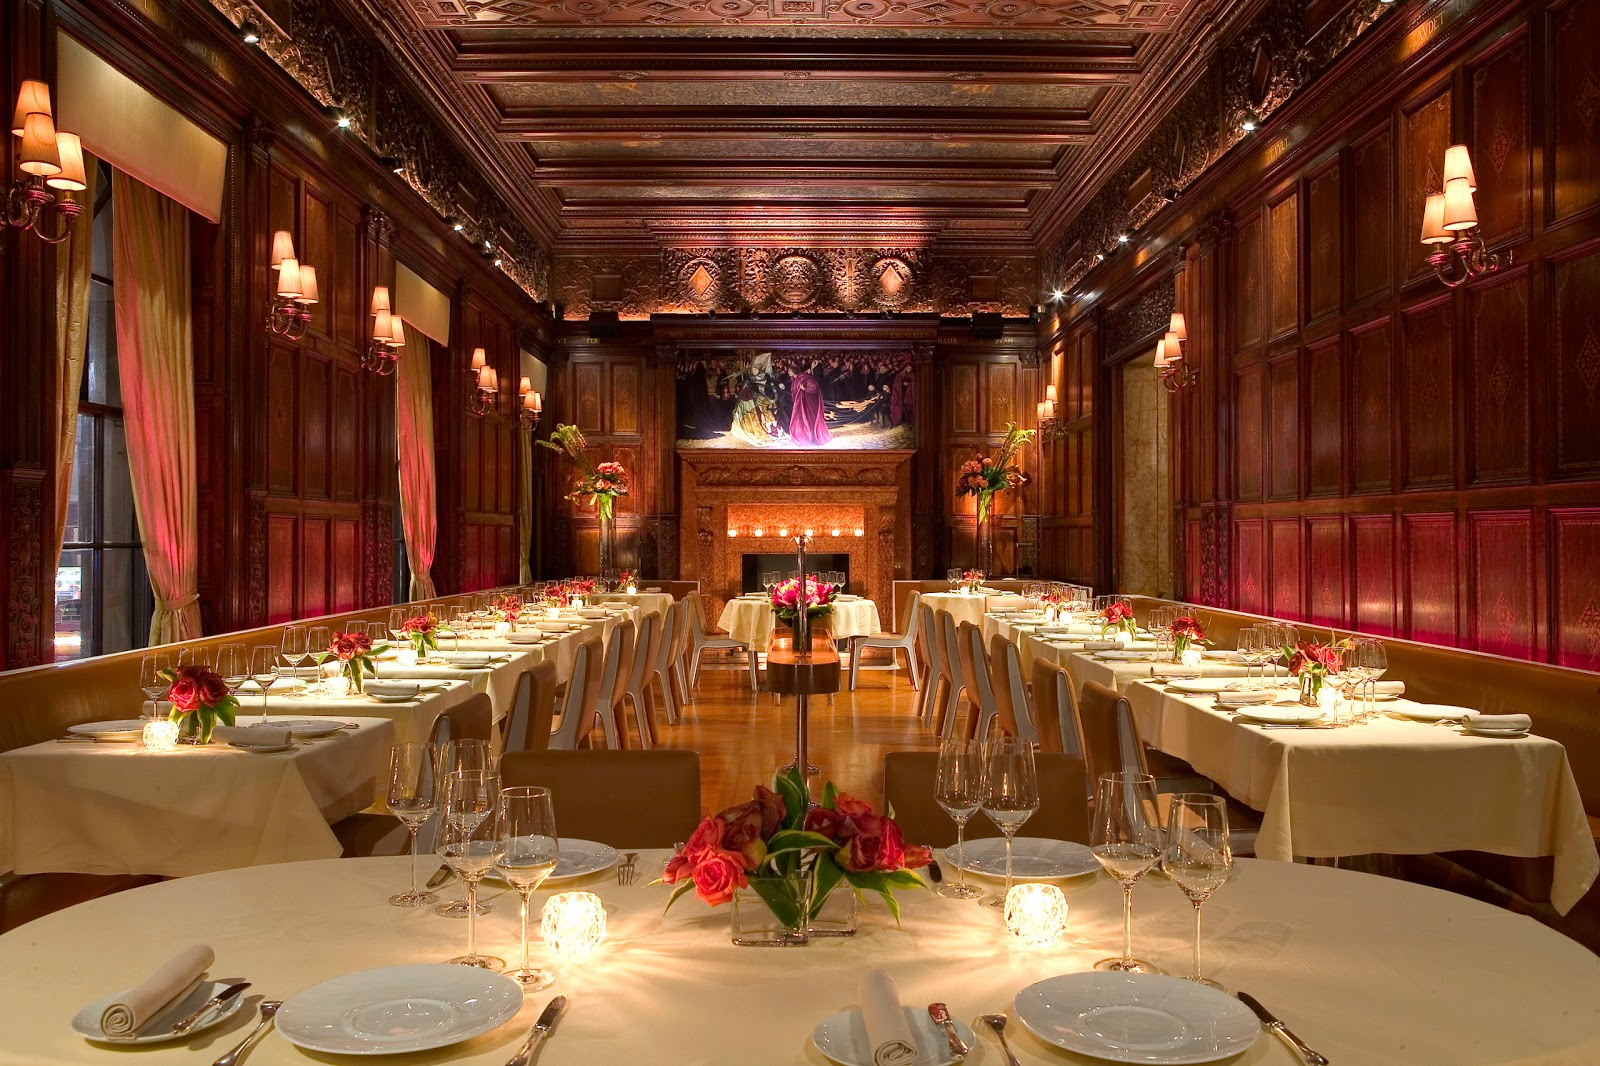 TOP 10 Best-Looking Restaurants in New York restaurants TOP 10 Best-Looking Restaurants in New York H84WF 27276157 GiltFireplace2008